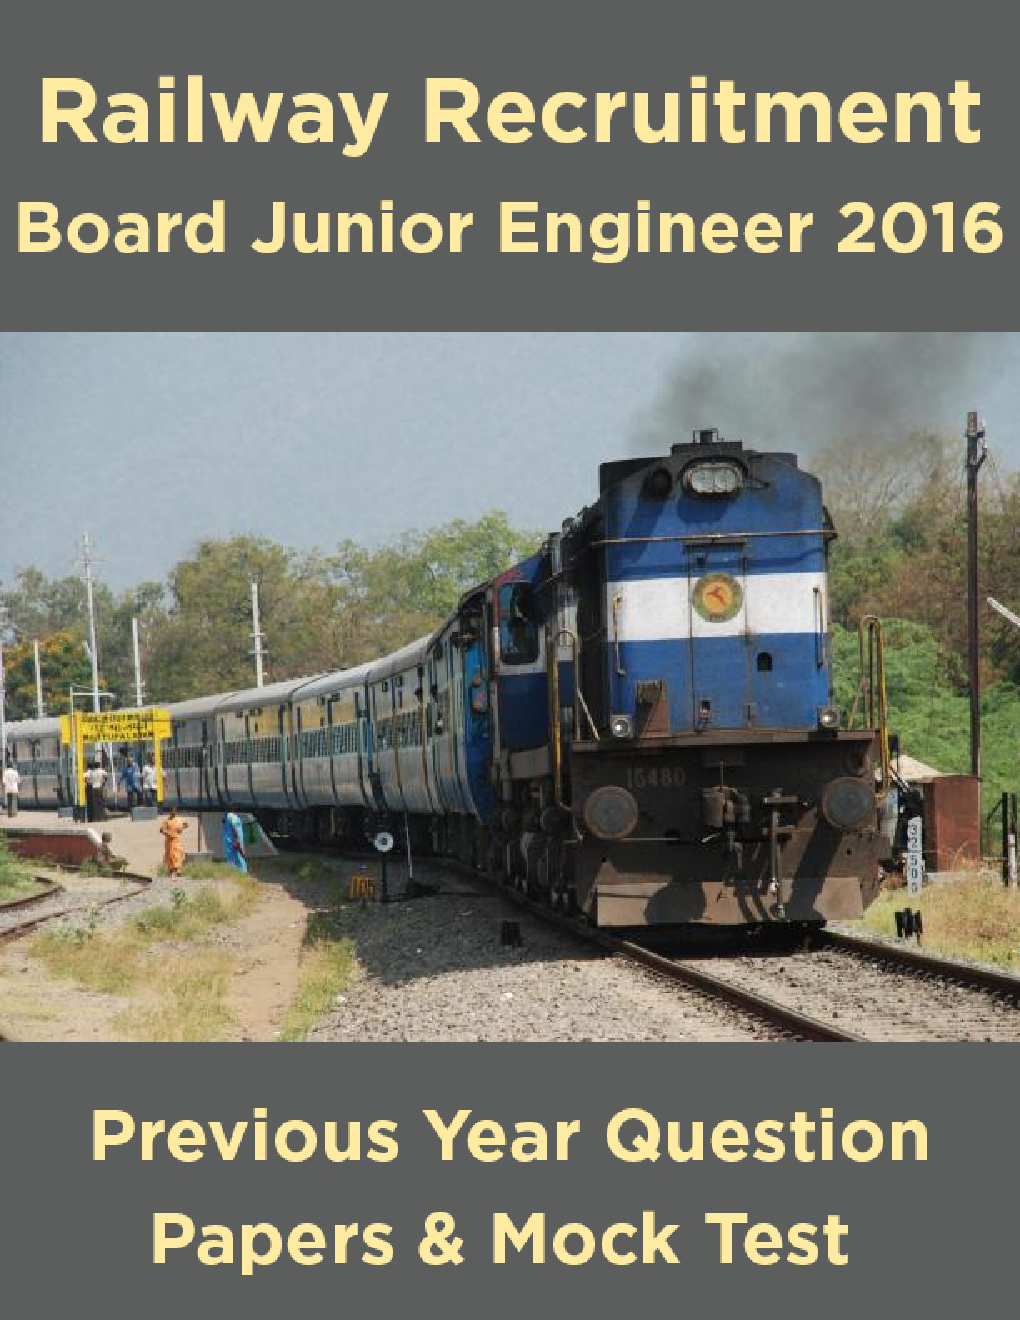 Railway Recruitment Board Junior Engineer 2016 Previous Year Question Papers And Mock Test - Page 1